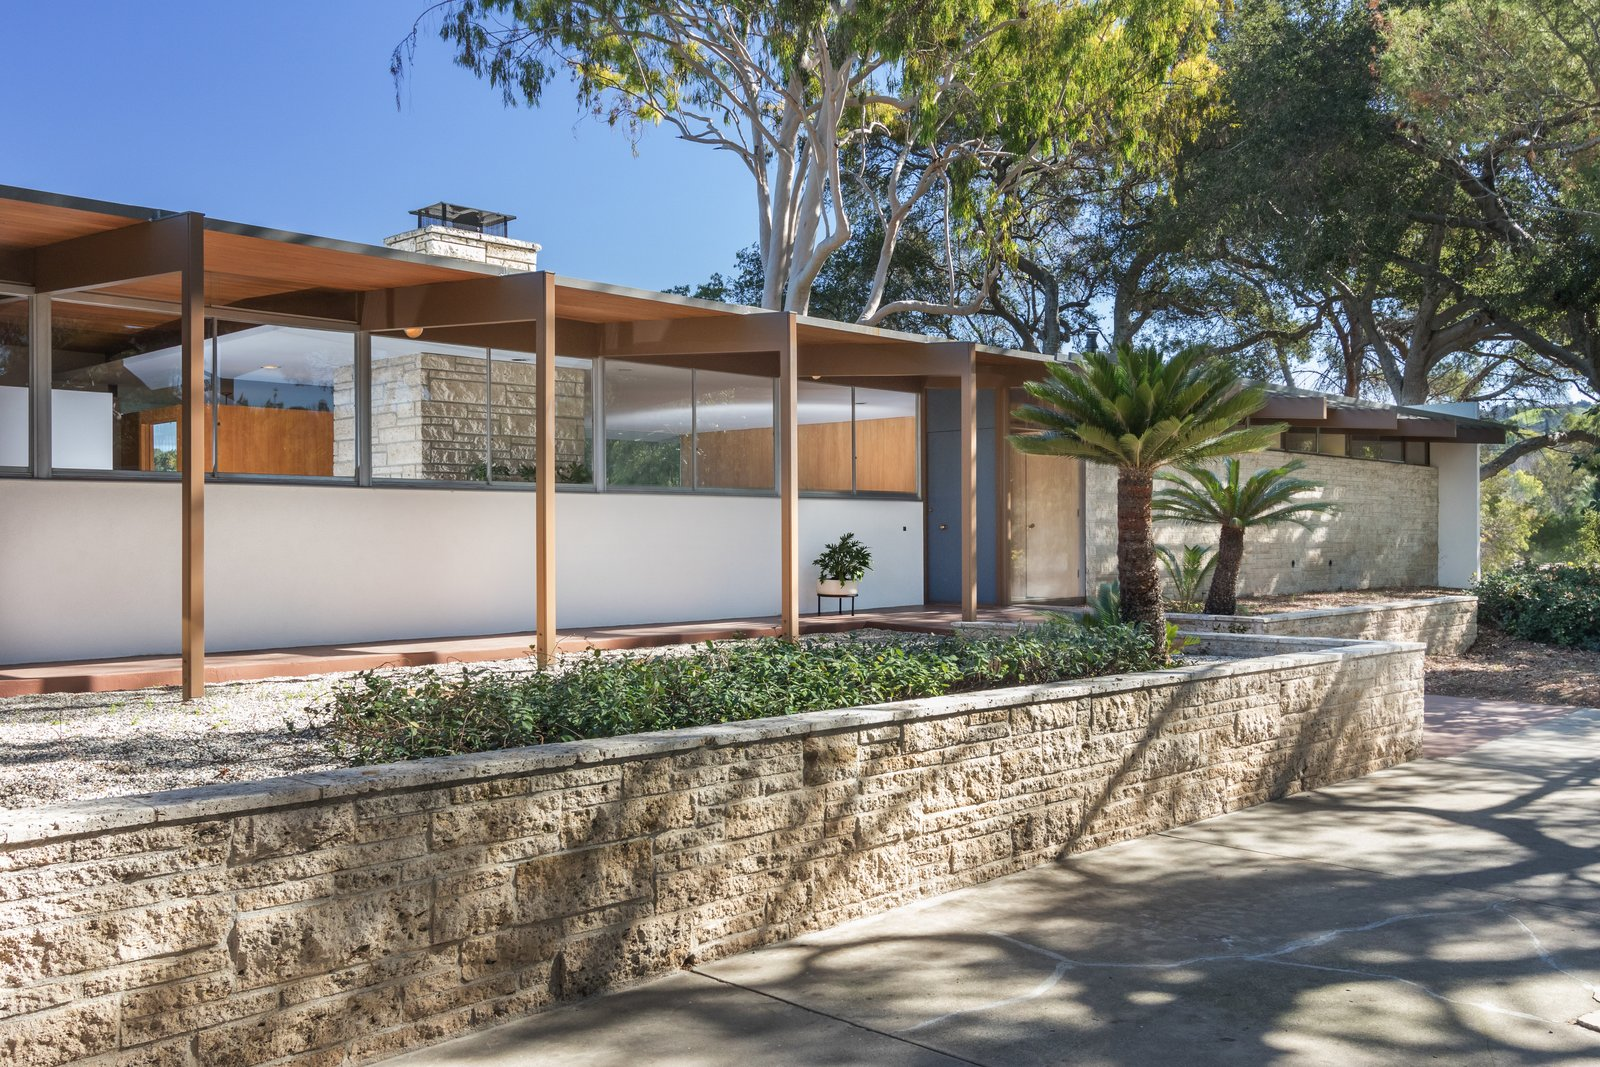 Originally sited on 14 acres of avocado and lime trees, the 2,580-square-foot residence was designed by Richard Neutra for James Roberts, a successful businessman in the manufacturing business, and his wife in 1955. A horse and several sheep roamed the property. Listing agent Nate Cole shares this anecdote: